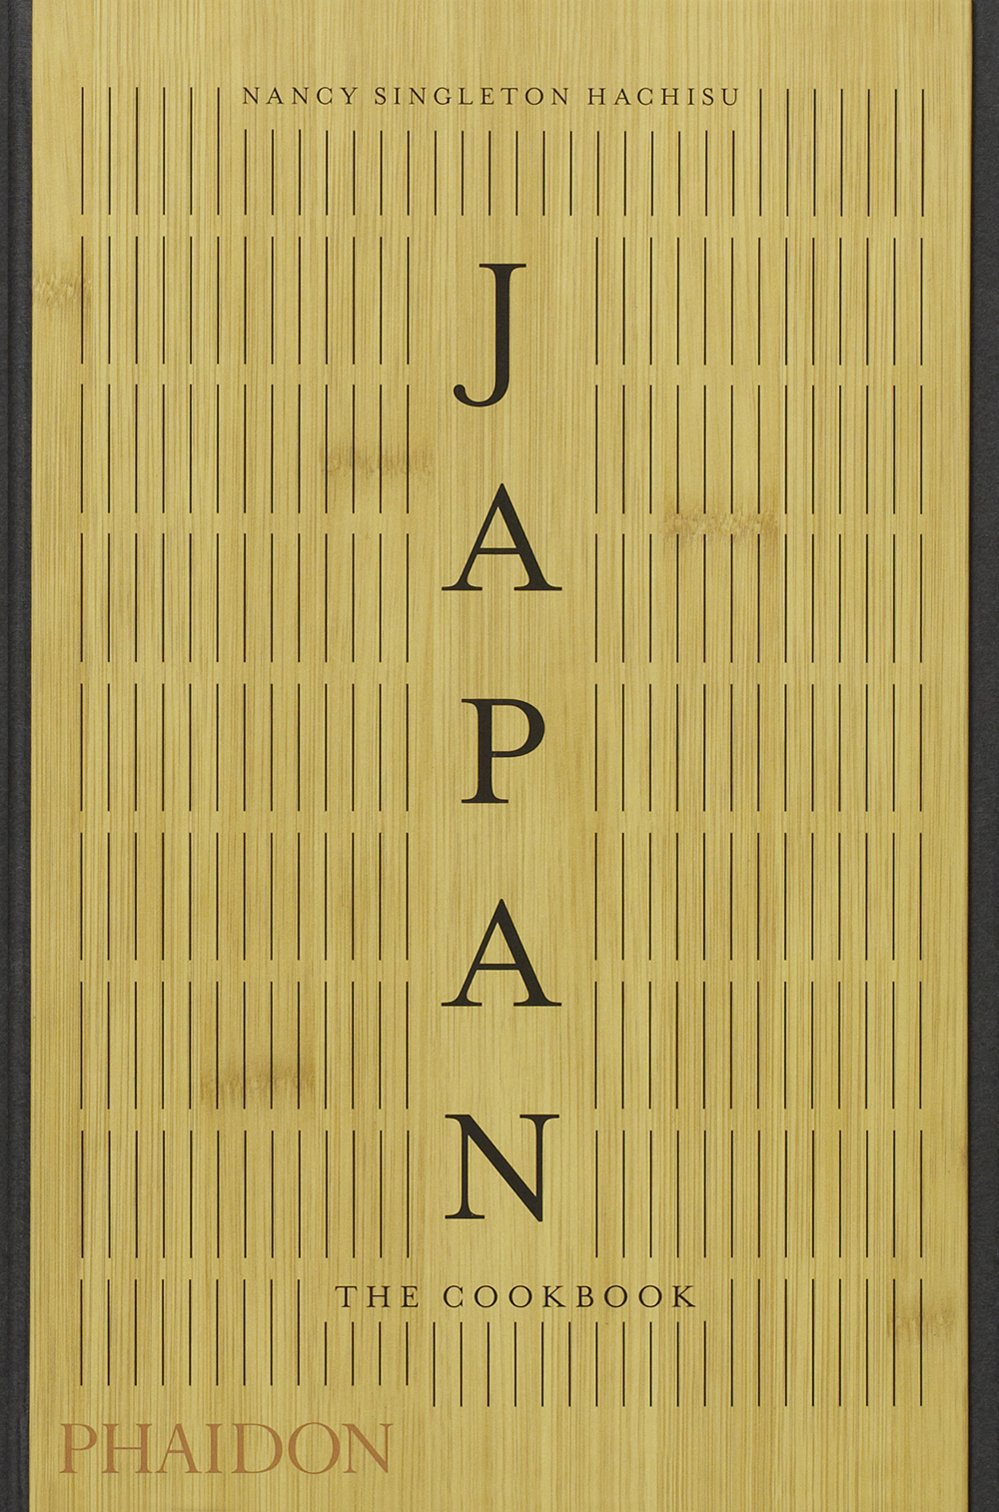 Japan: The Cookbook by Phaidon Press